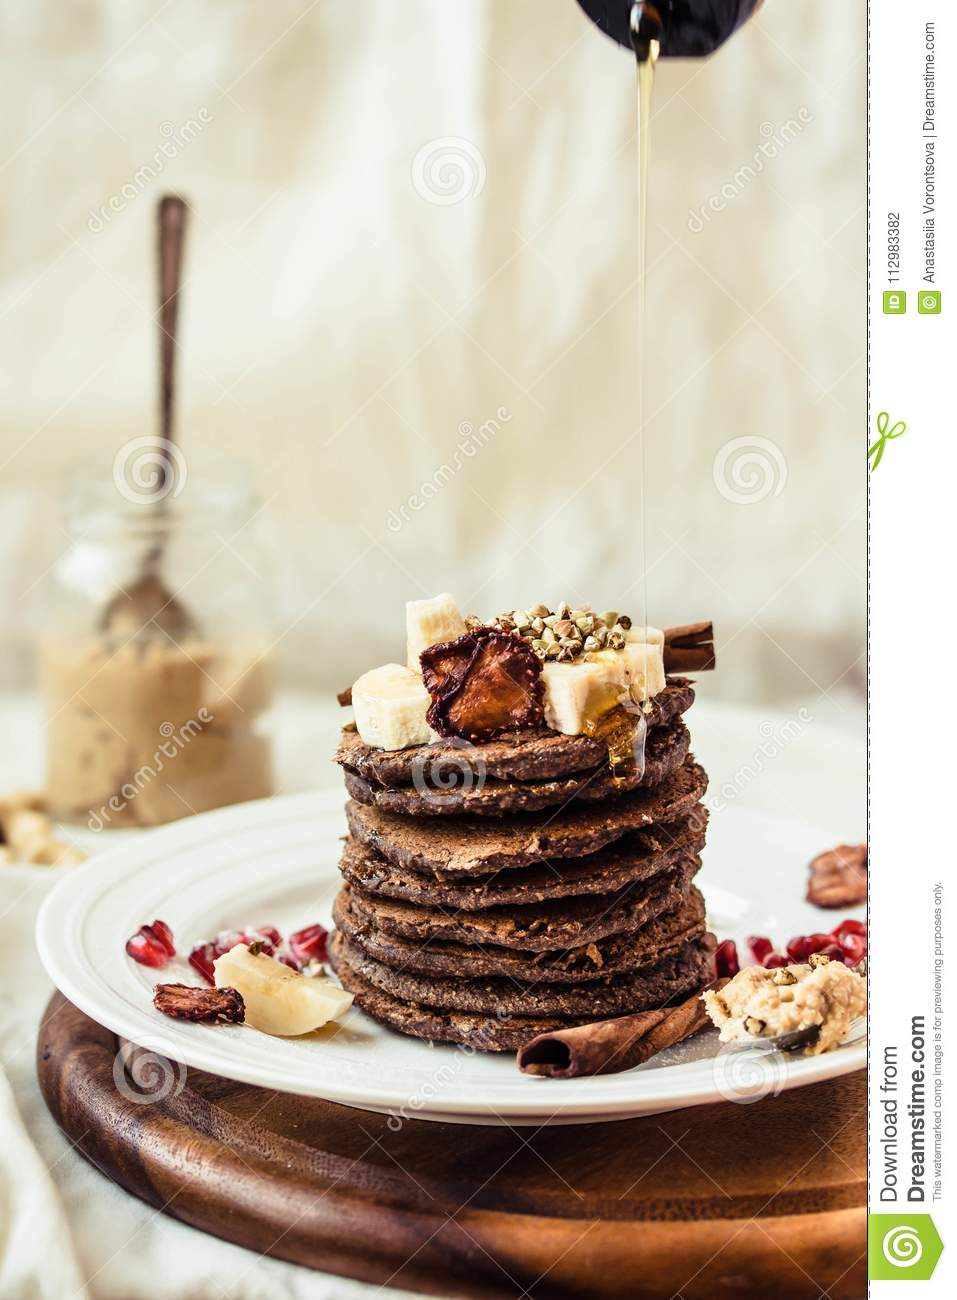 Chocolate pancakes with banana, peanut butter, cinnamon and maple syrup pour.Selective focus.Place for text